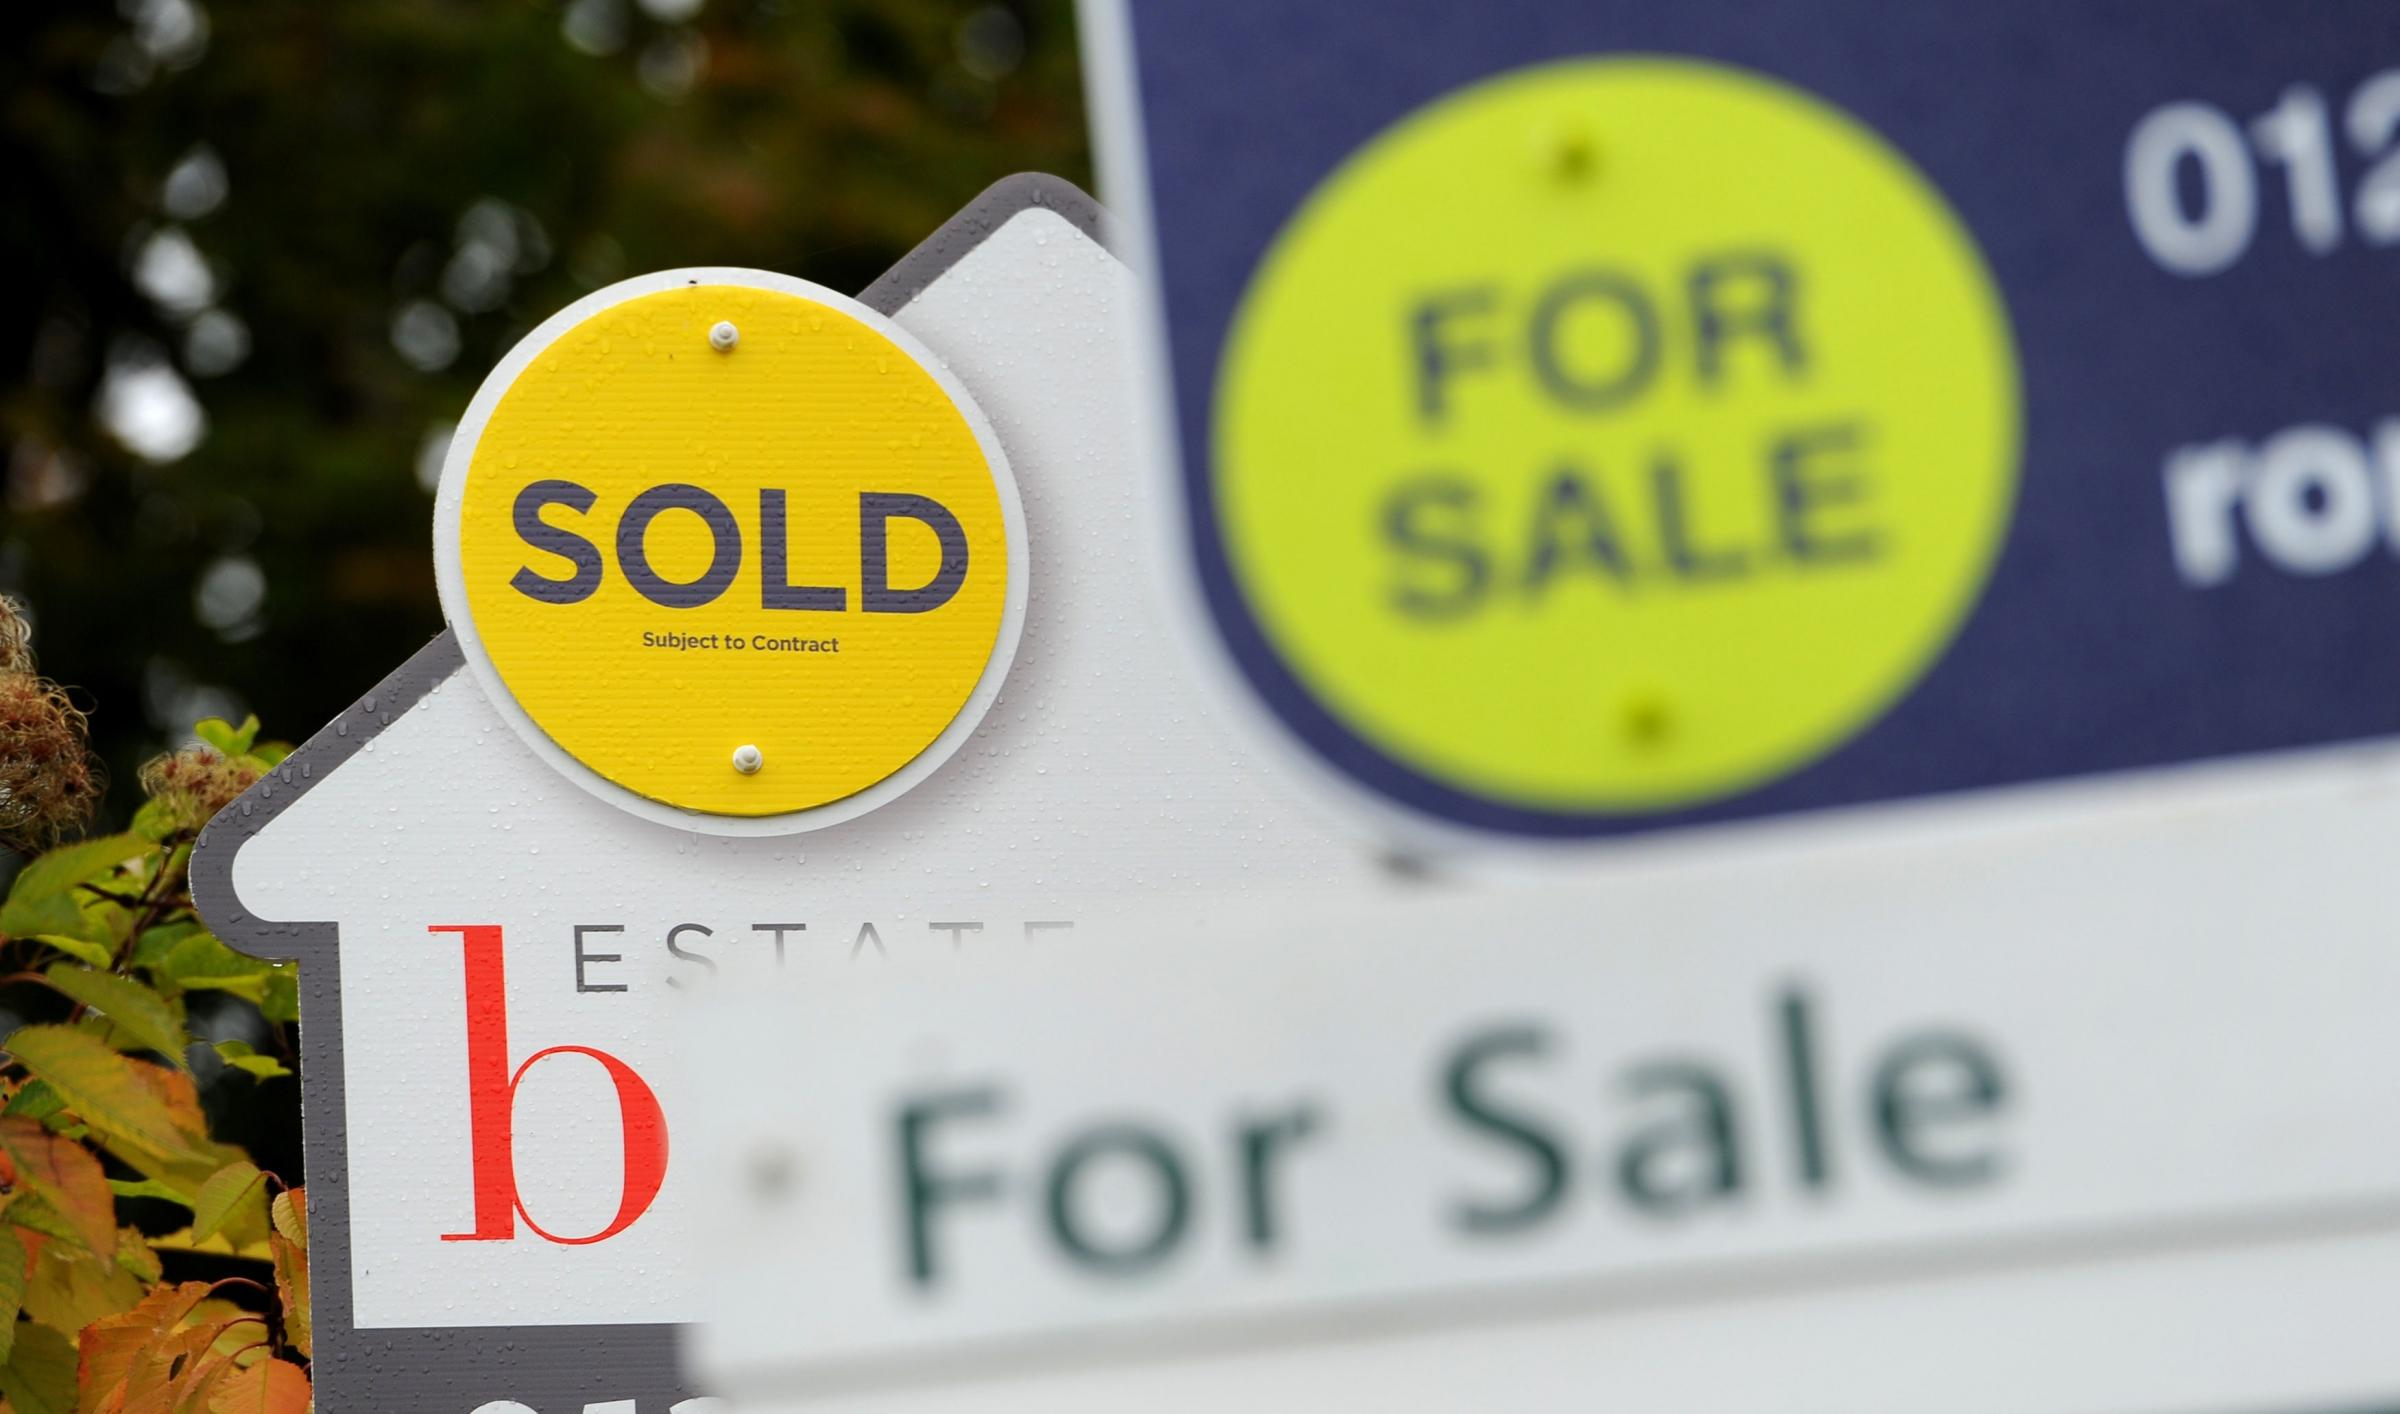 Figures from trade association UK Finance show that buy-to-let lending for house purchases plunged by a fifth in March 2018 compared with a year earlier (Picture: Andrew Matthews/PA Wire)